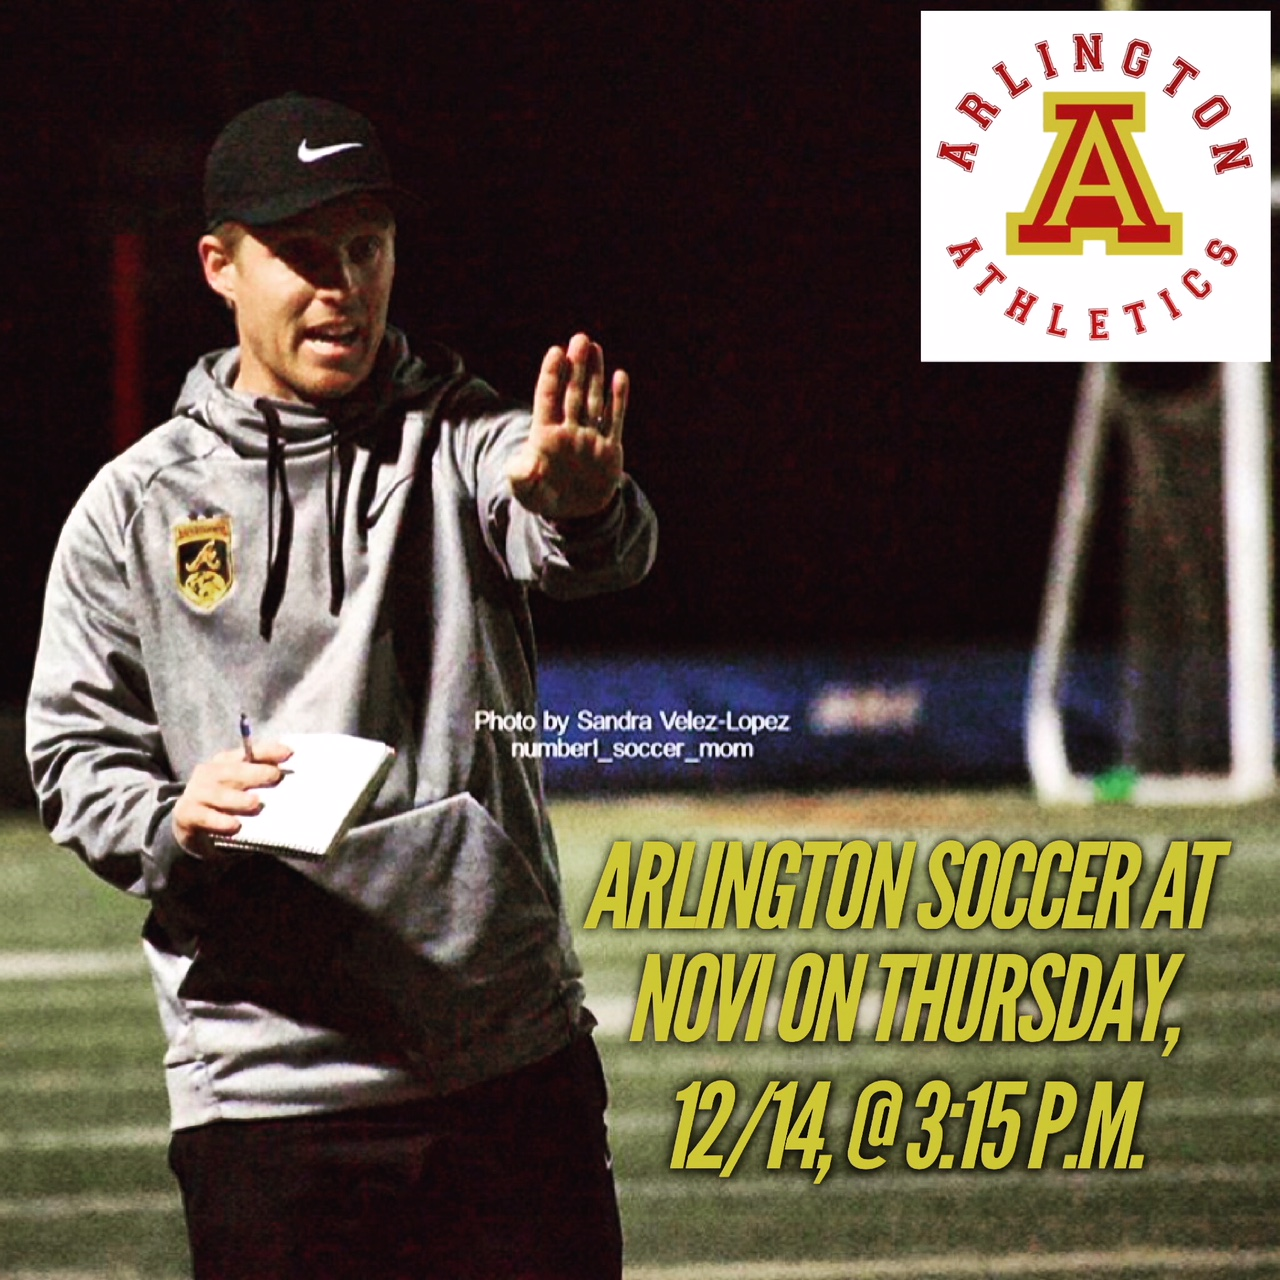 Arlington Boys' Soccer at Norte Vista, on Thursday, 12/14.  Varsity and J.V. @ 3:15 p.m.